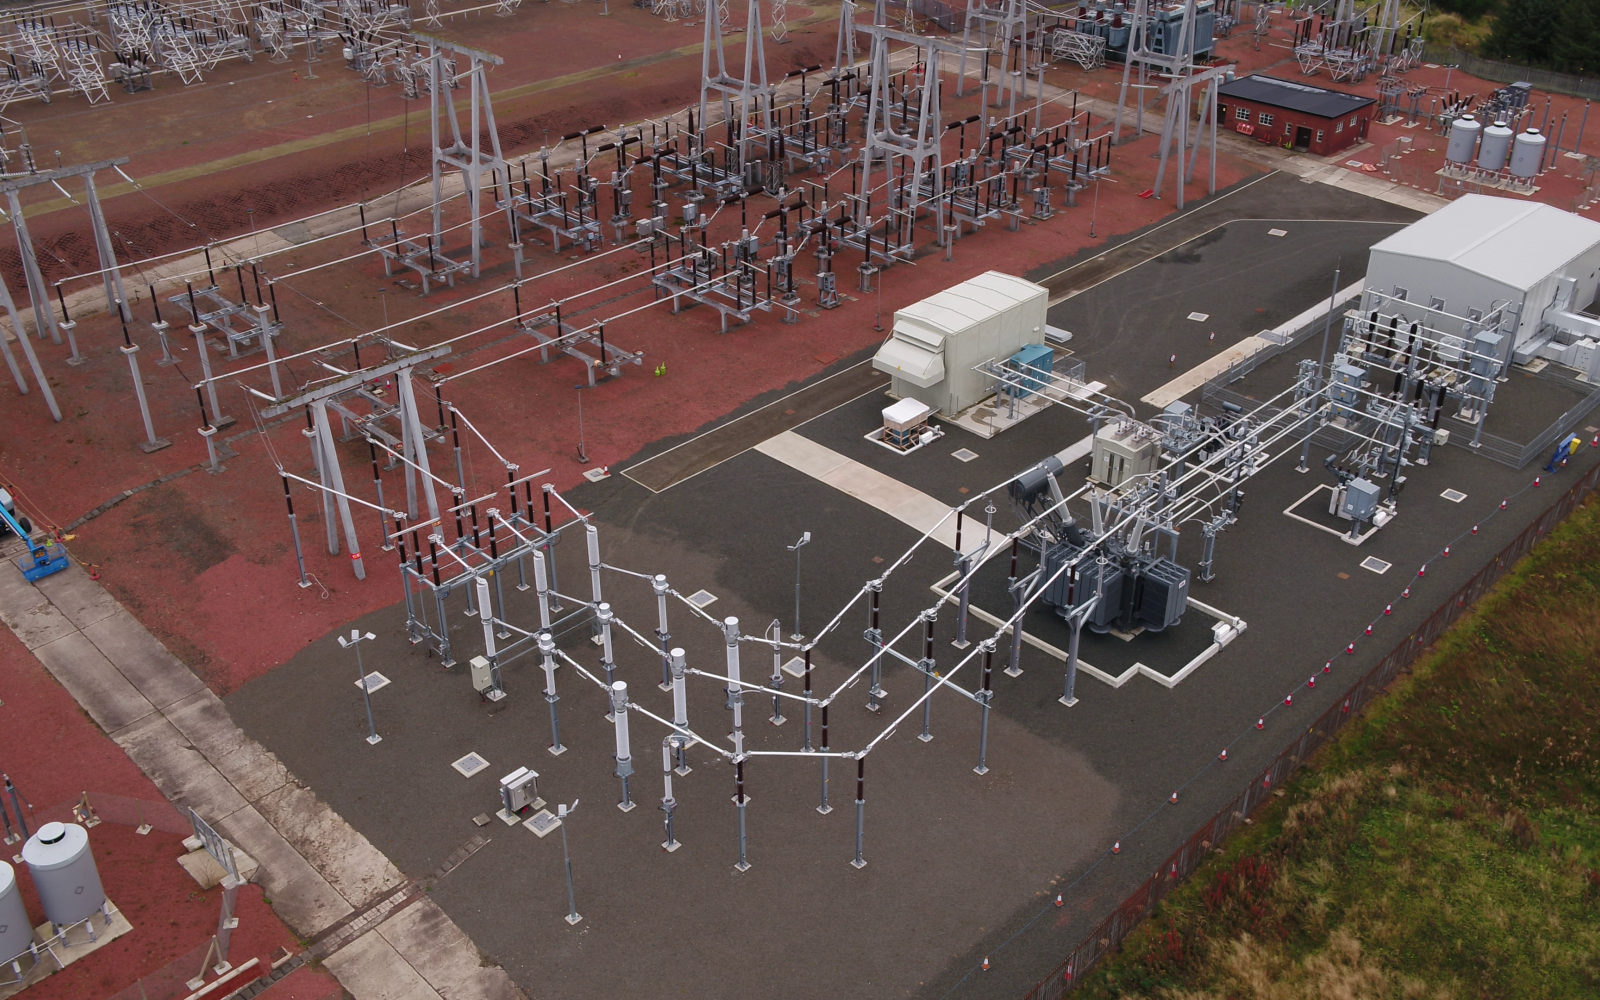 The Neilson substation, where the new Hybrid Synchronous Compensator solution has been installed. Image: SPEN.